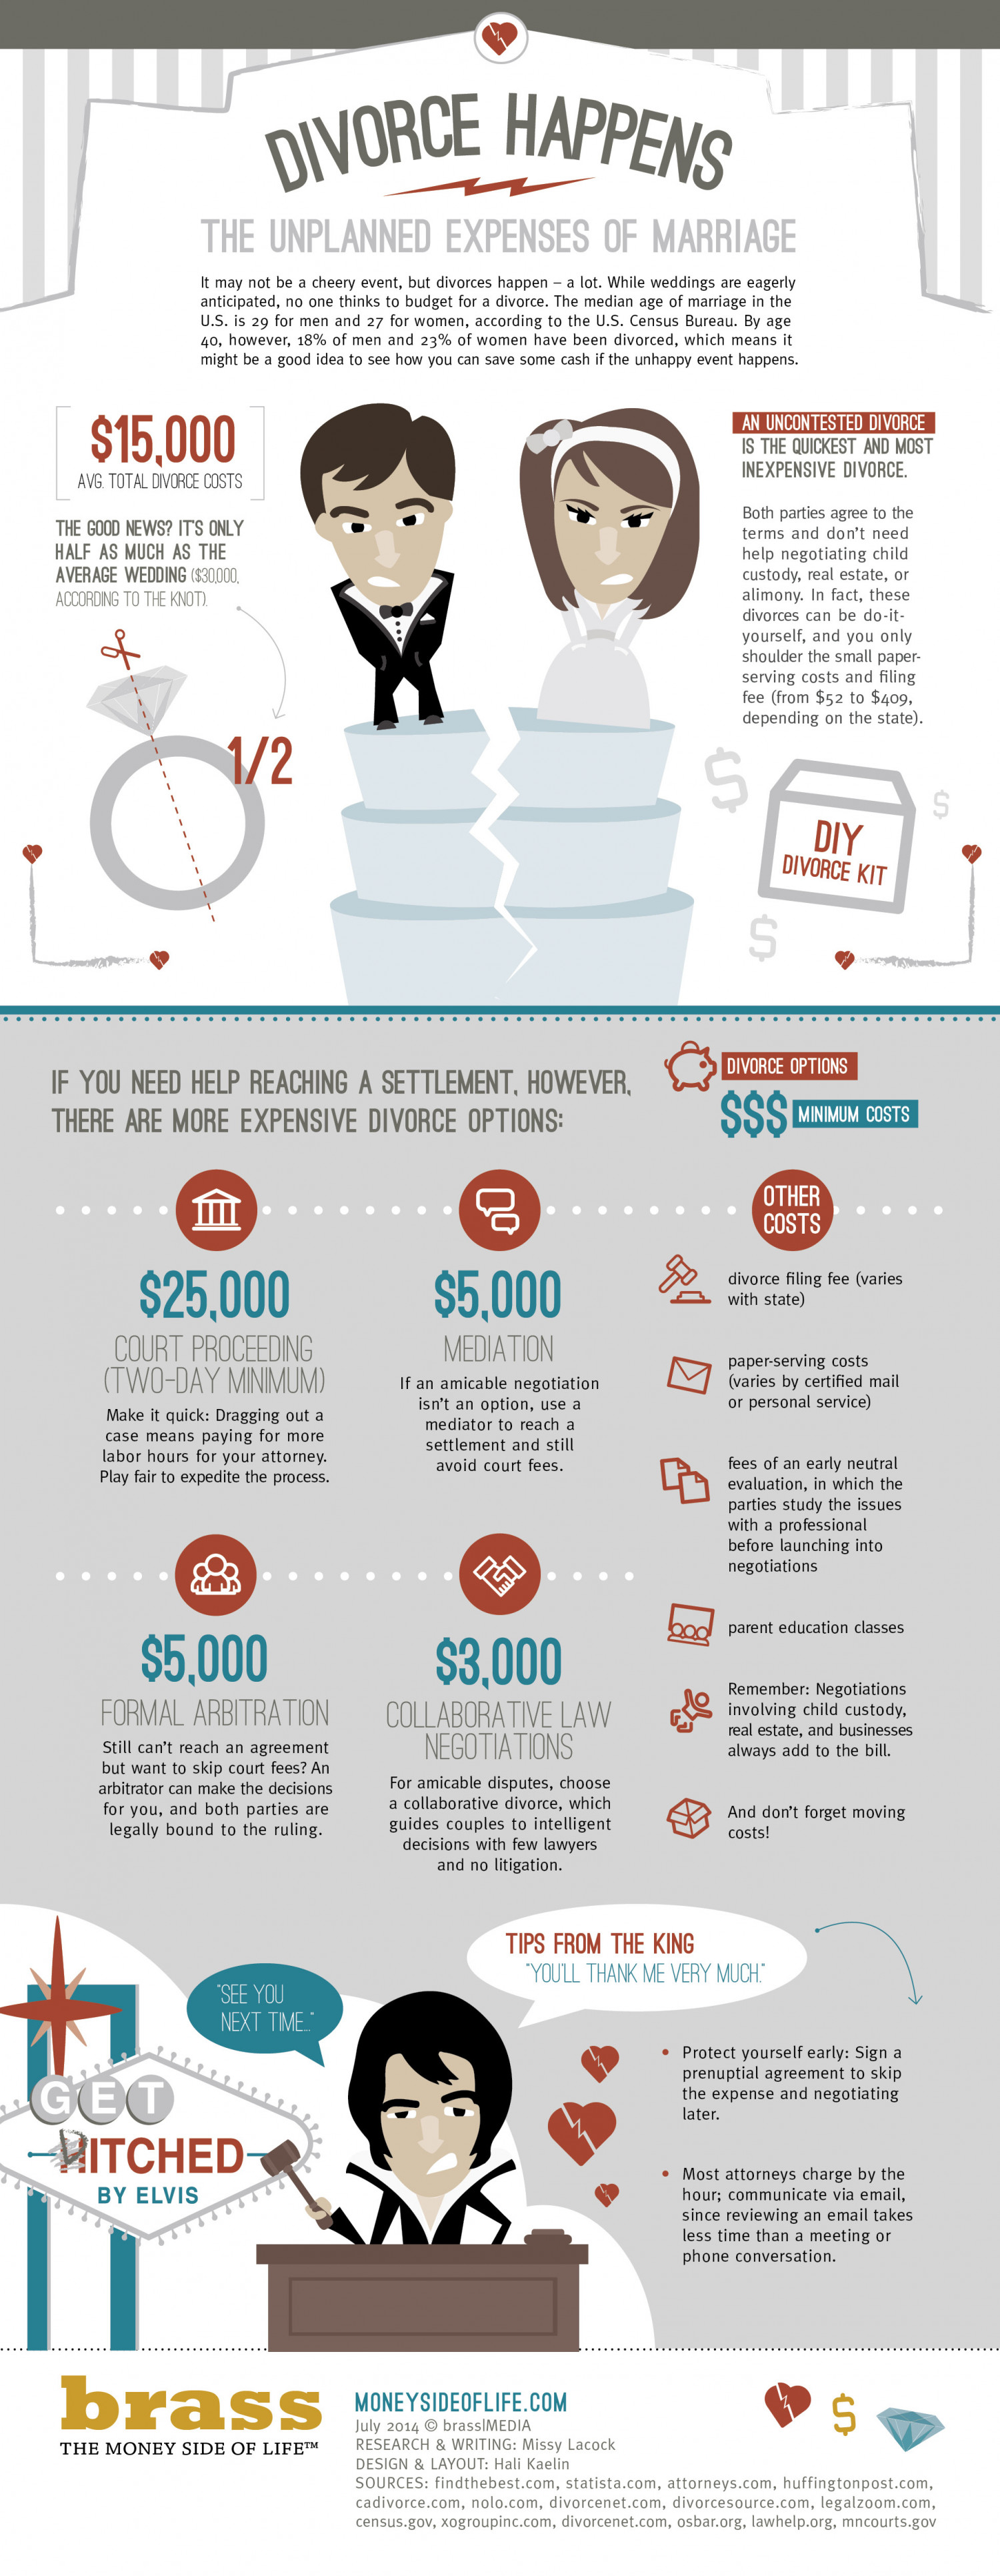 Divorce Happens: The unplanned expenses of marriage Infographic